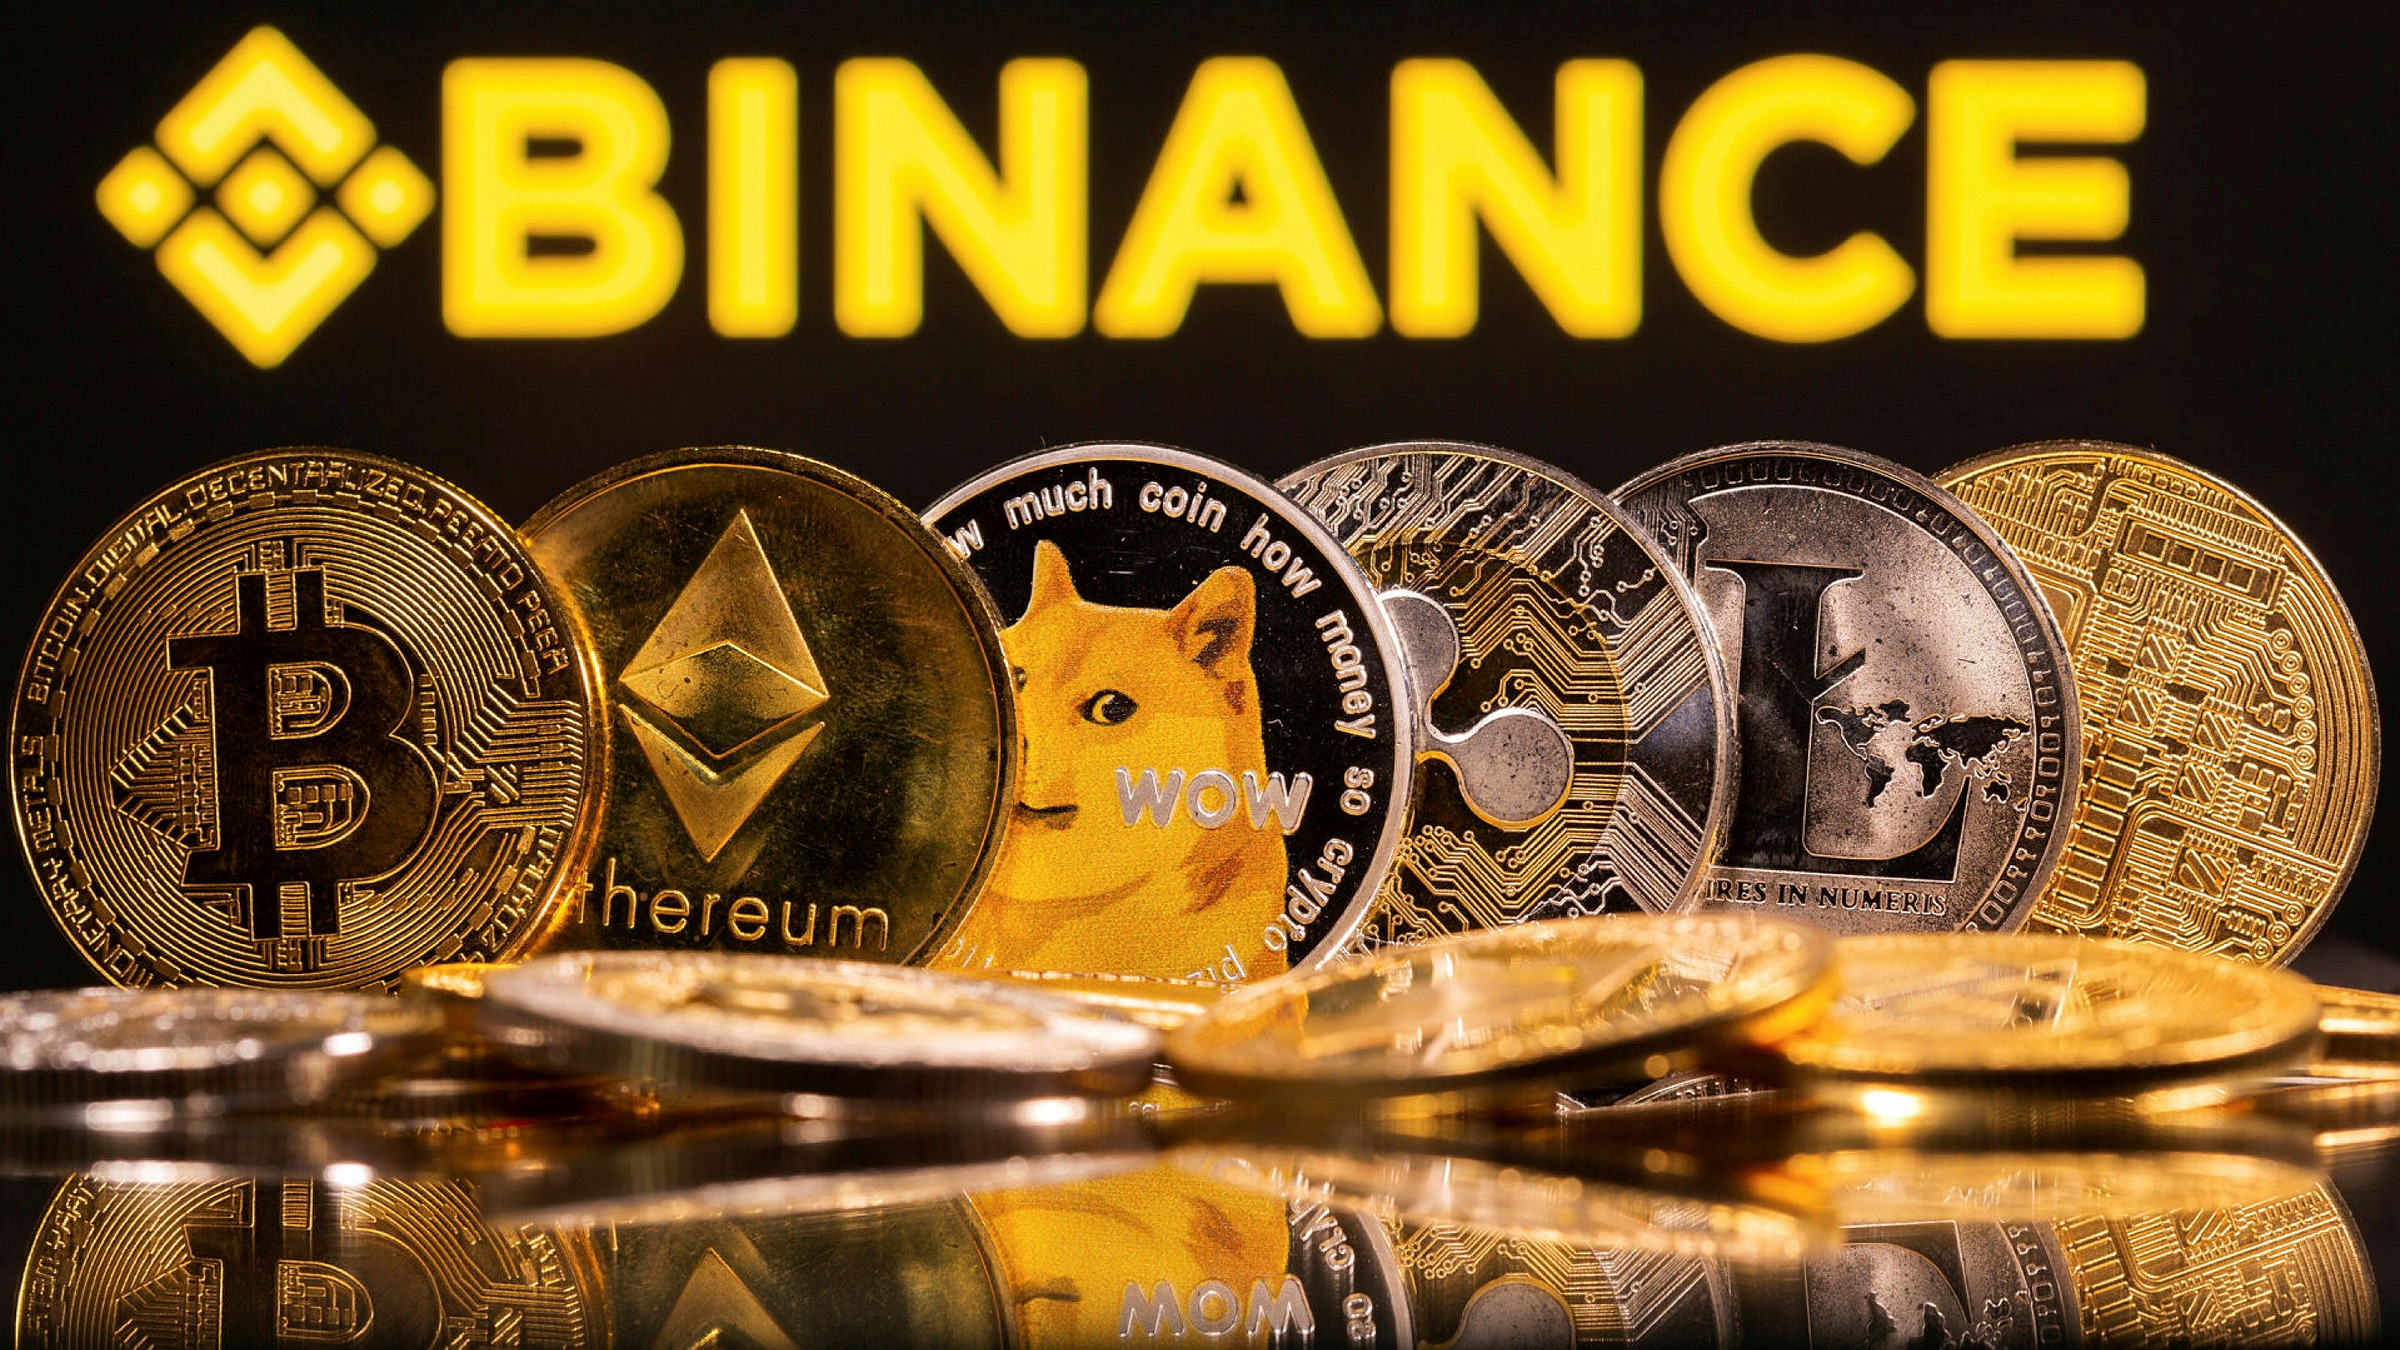 Binance is being investigated for market manipulation in the US